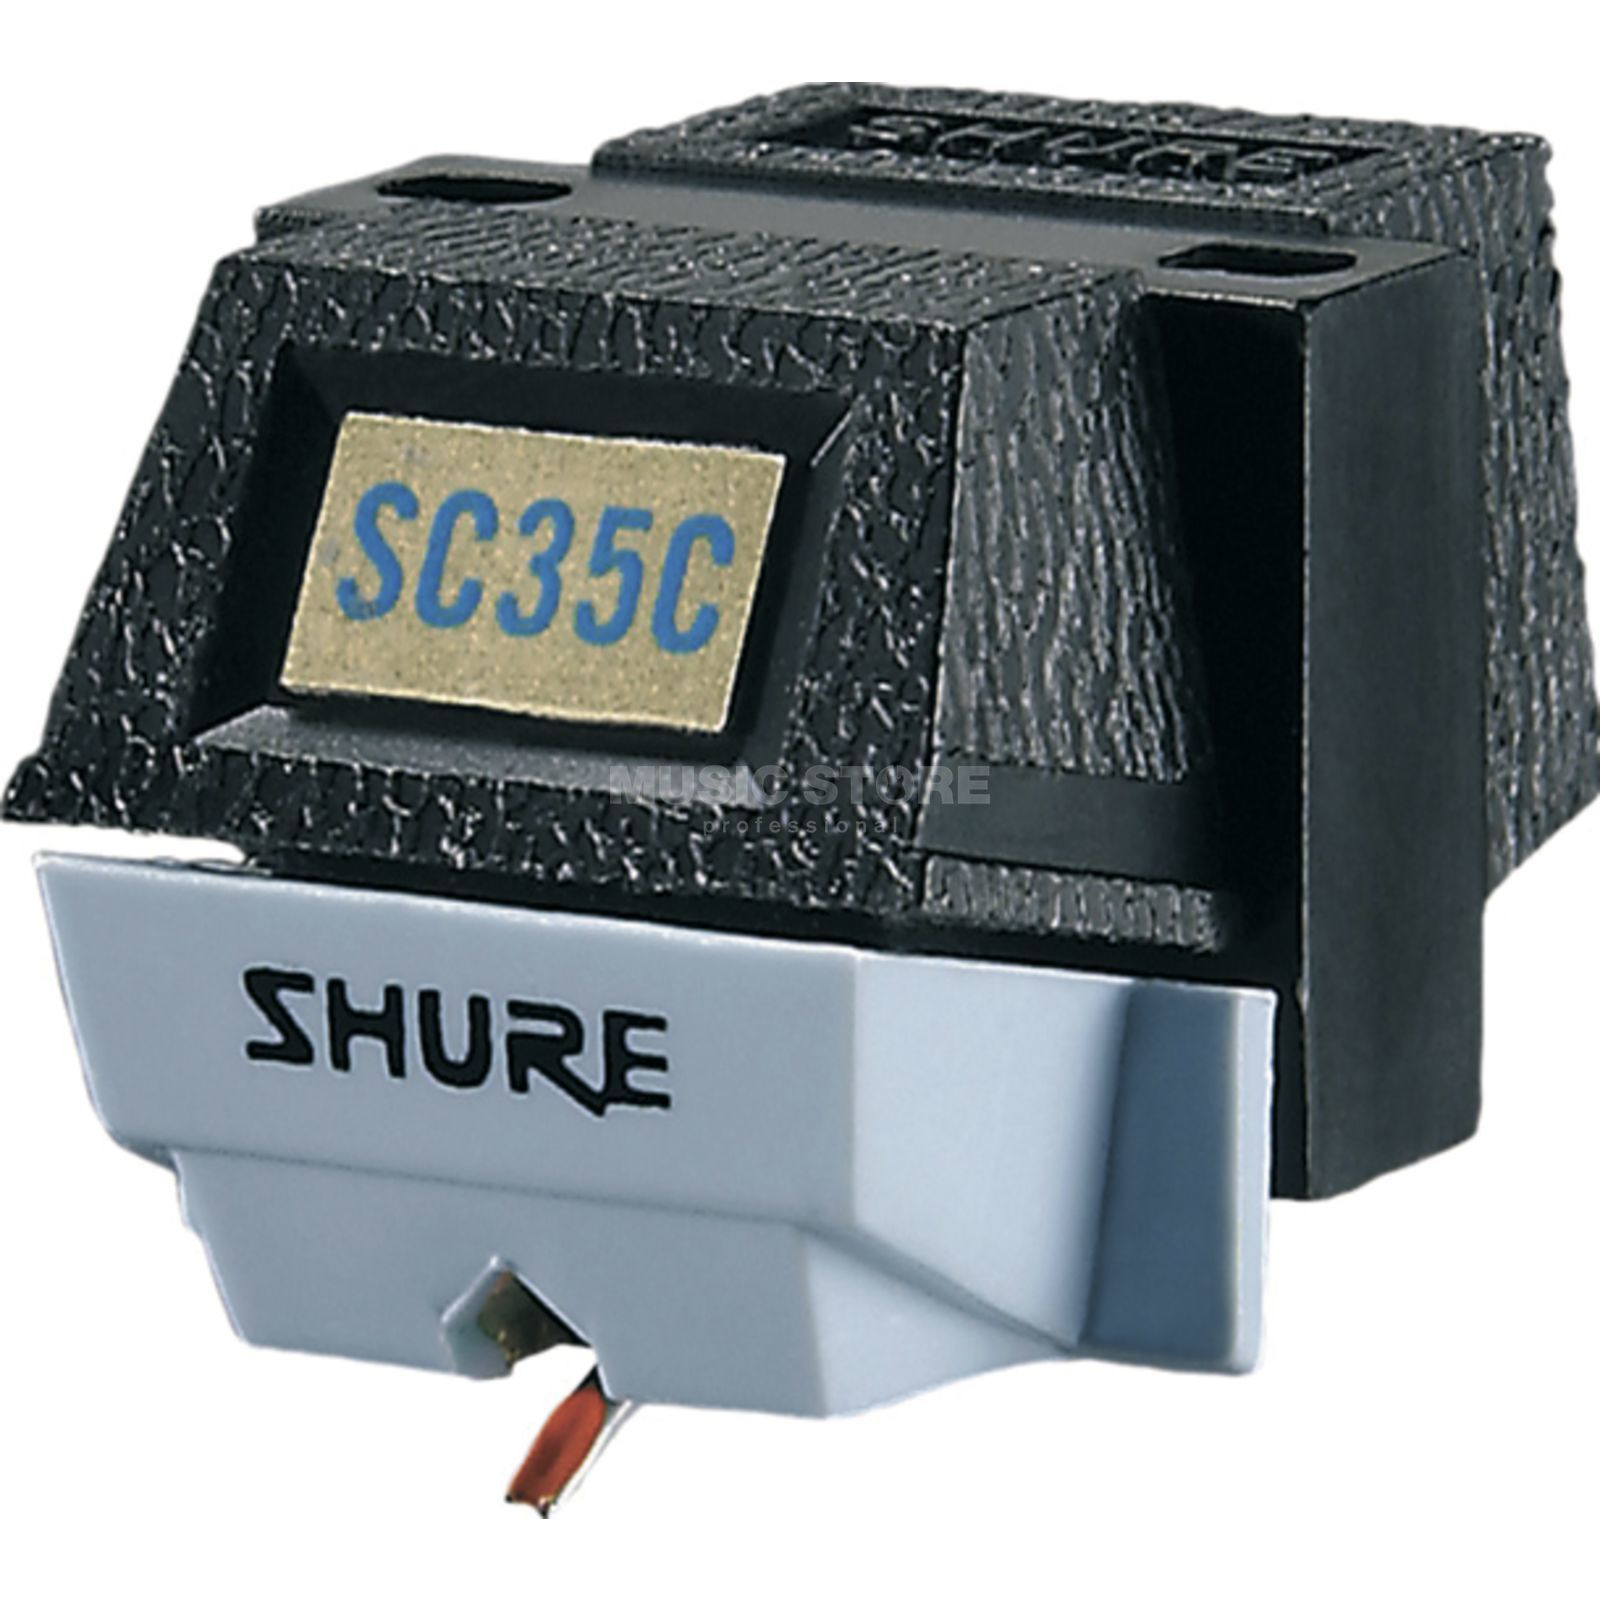 Shure SC35C / Standard DJ System V1.0 on V1.1, for PC & MAC Zdjęcie produktu